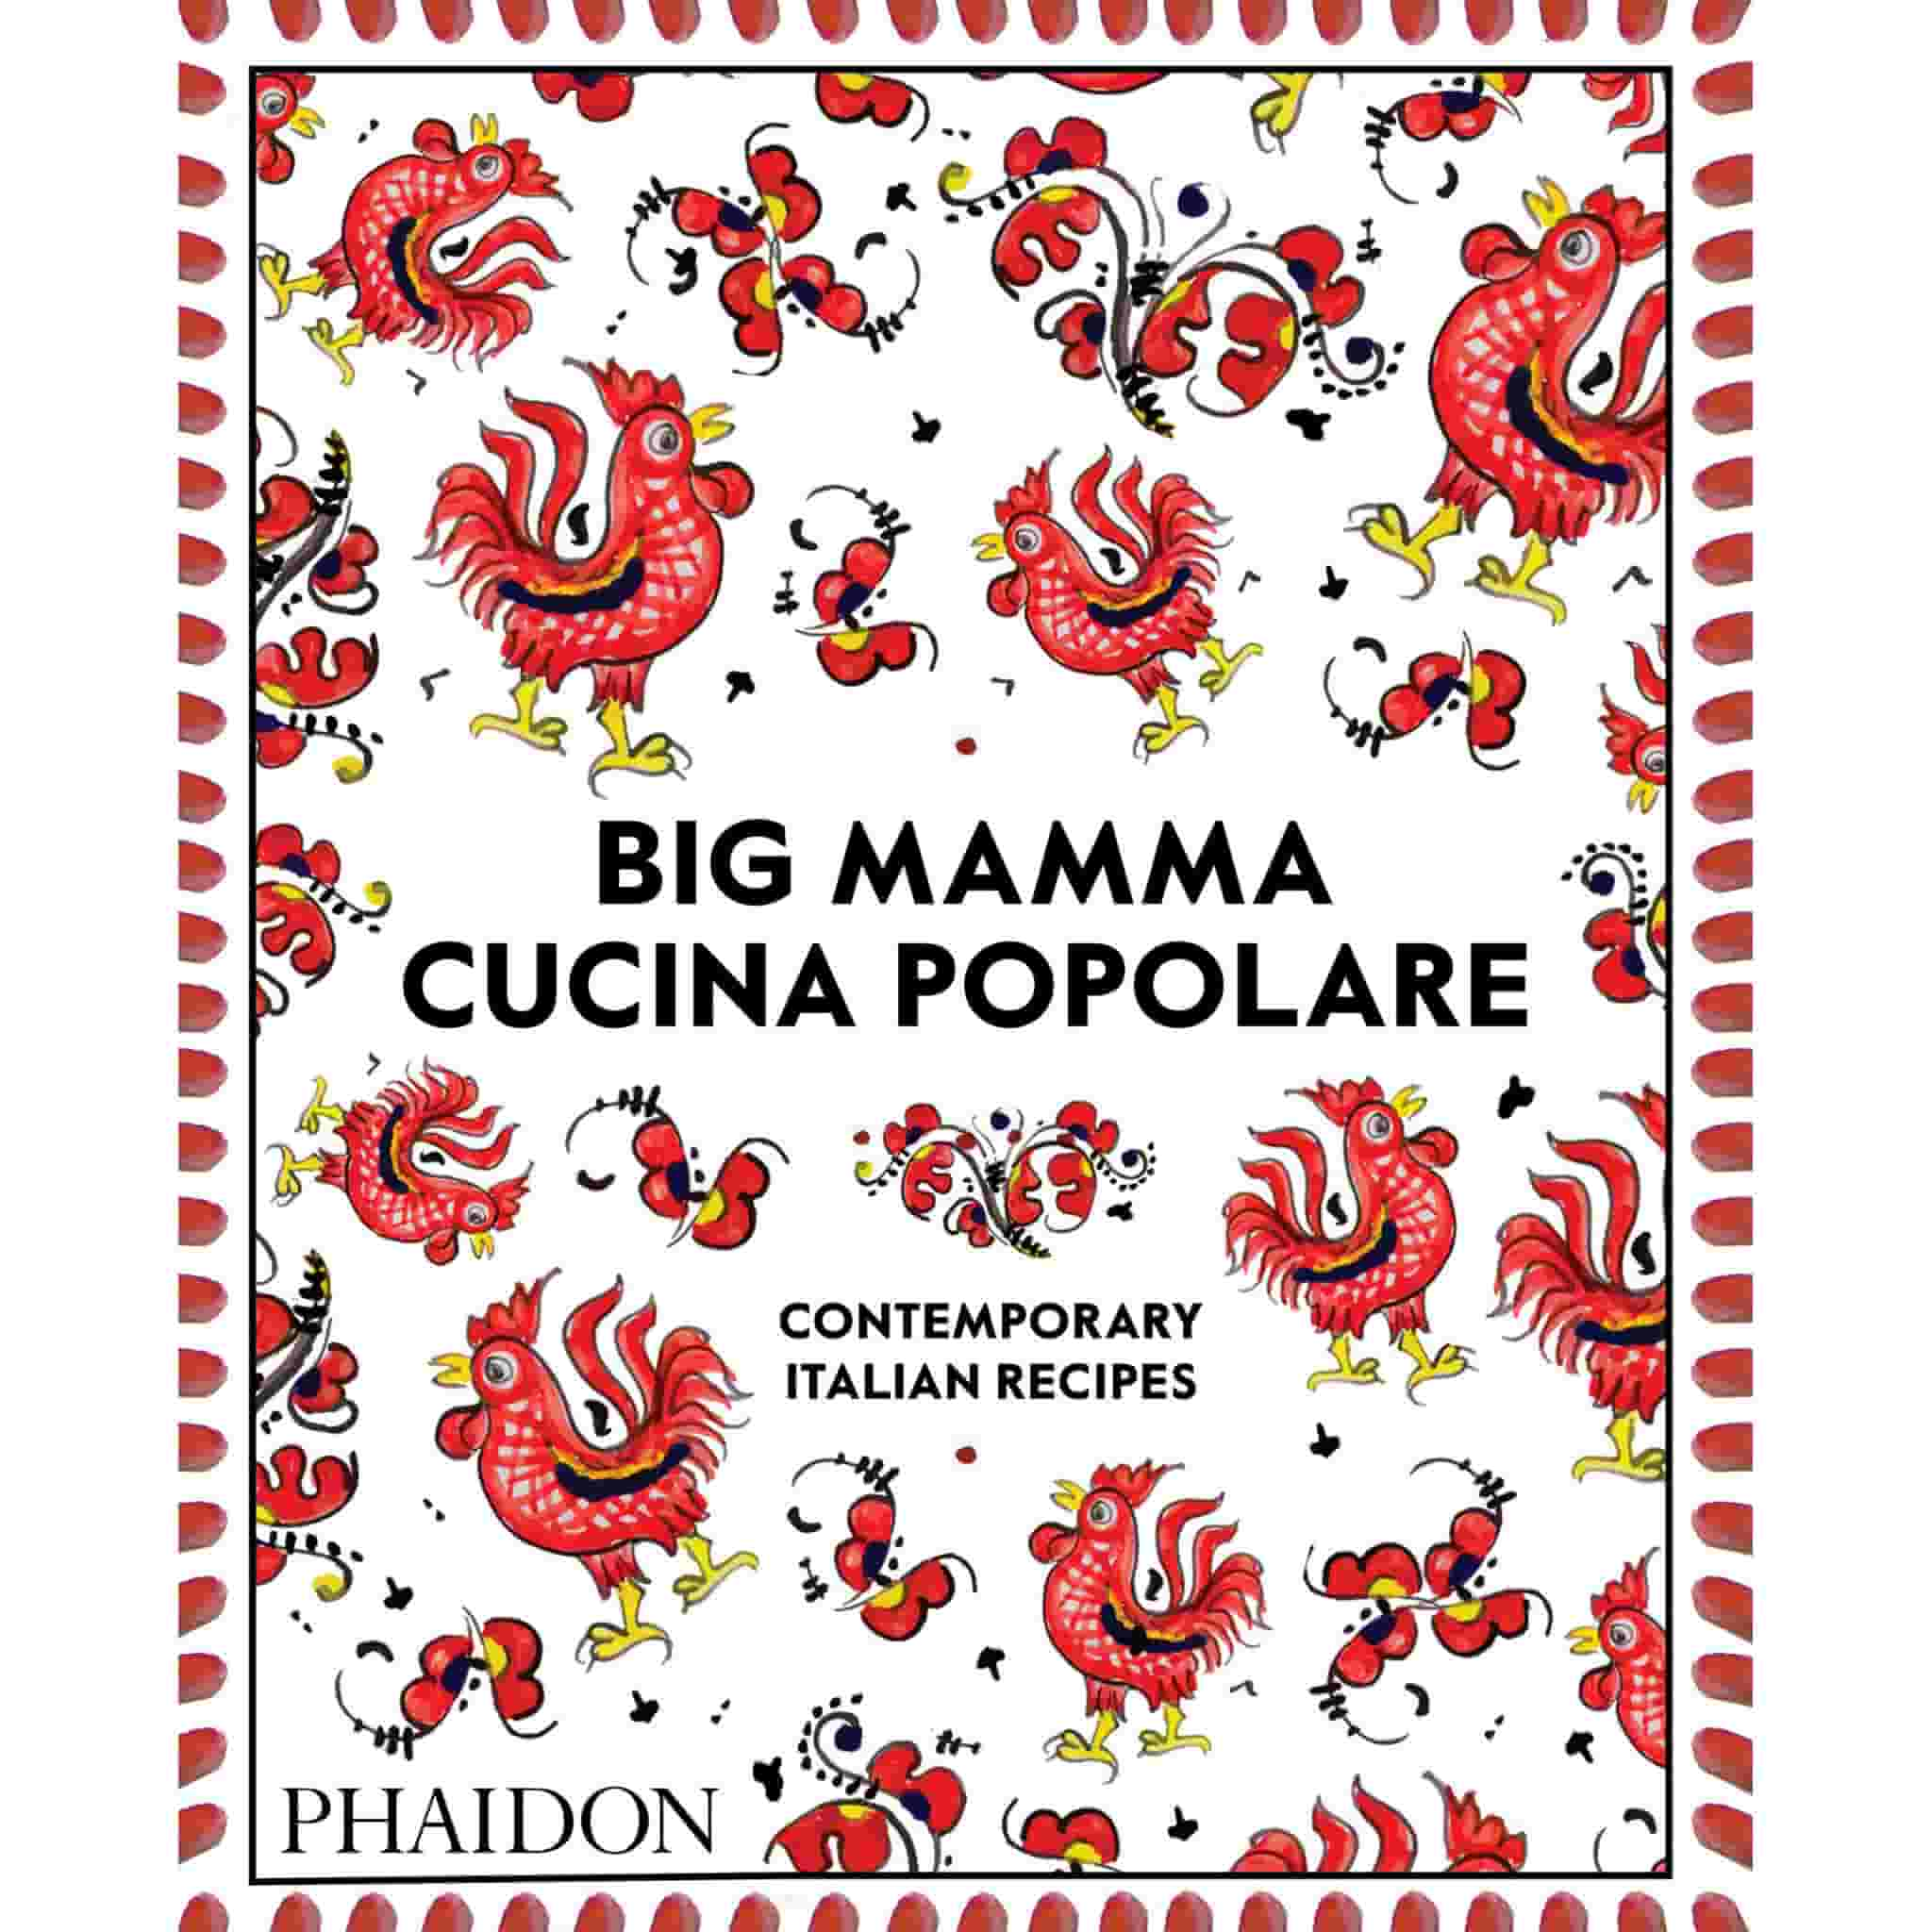 Big Mamma Cucina Popolare: Contemporary Italian Recipes